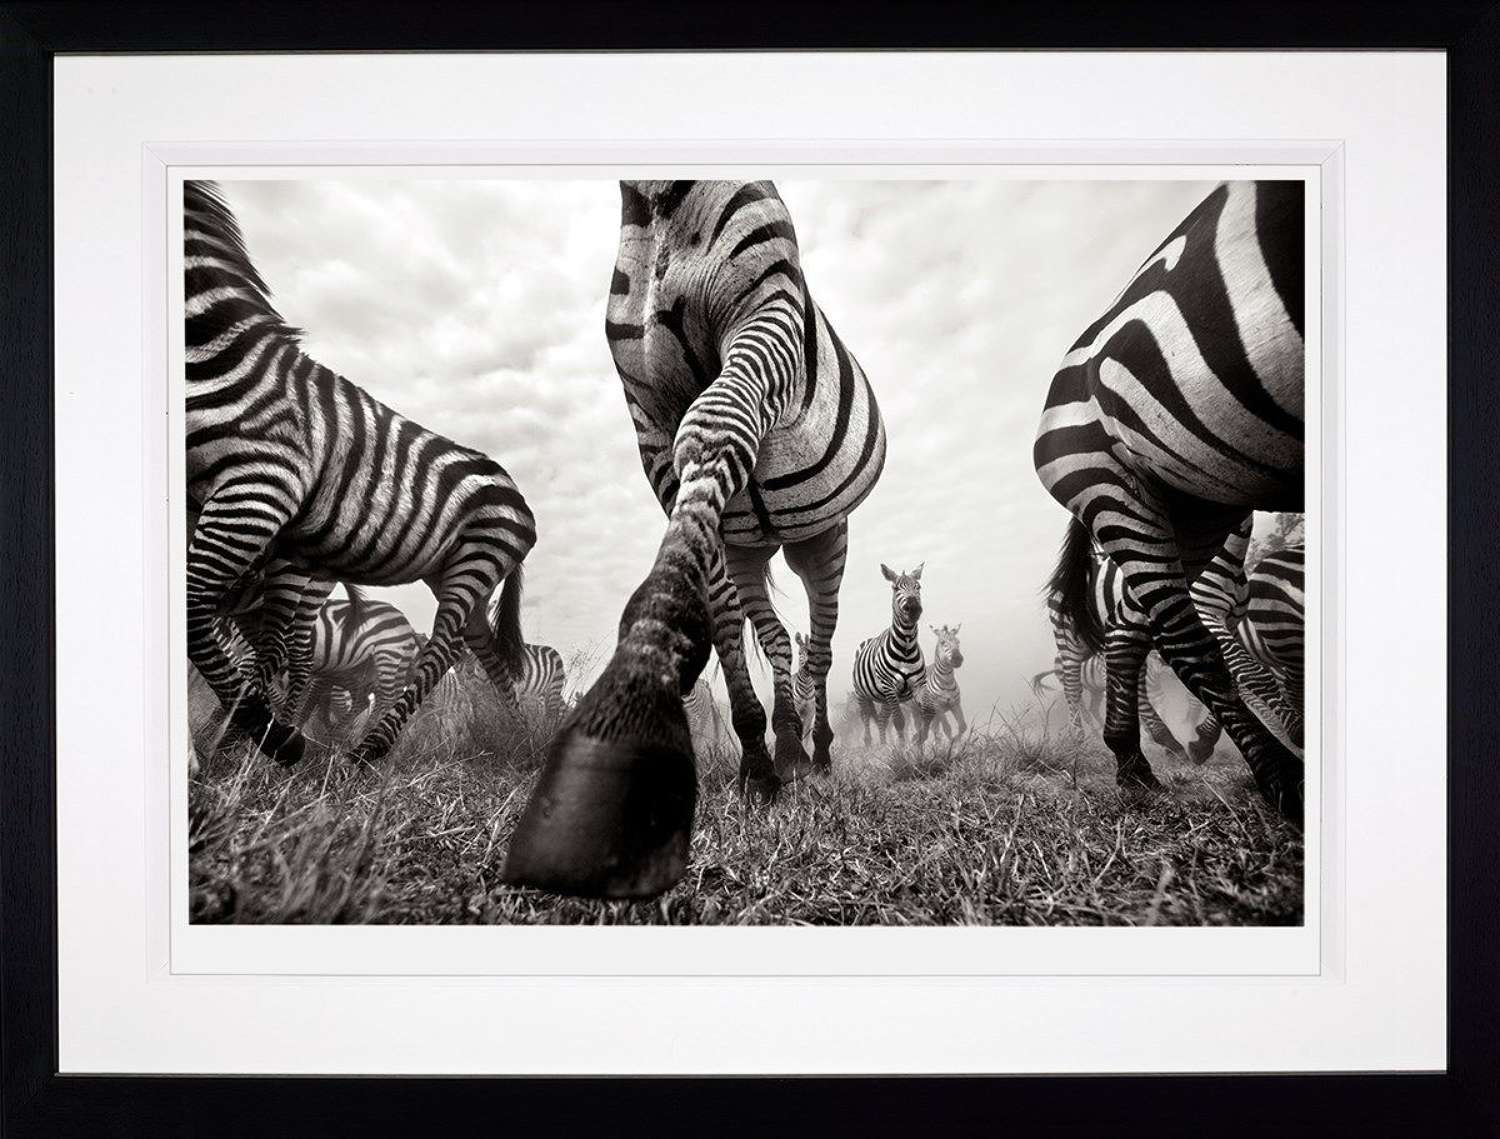 Onward - Framed Photographic Art Print by Anup Shah